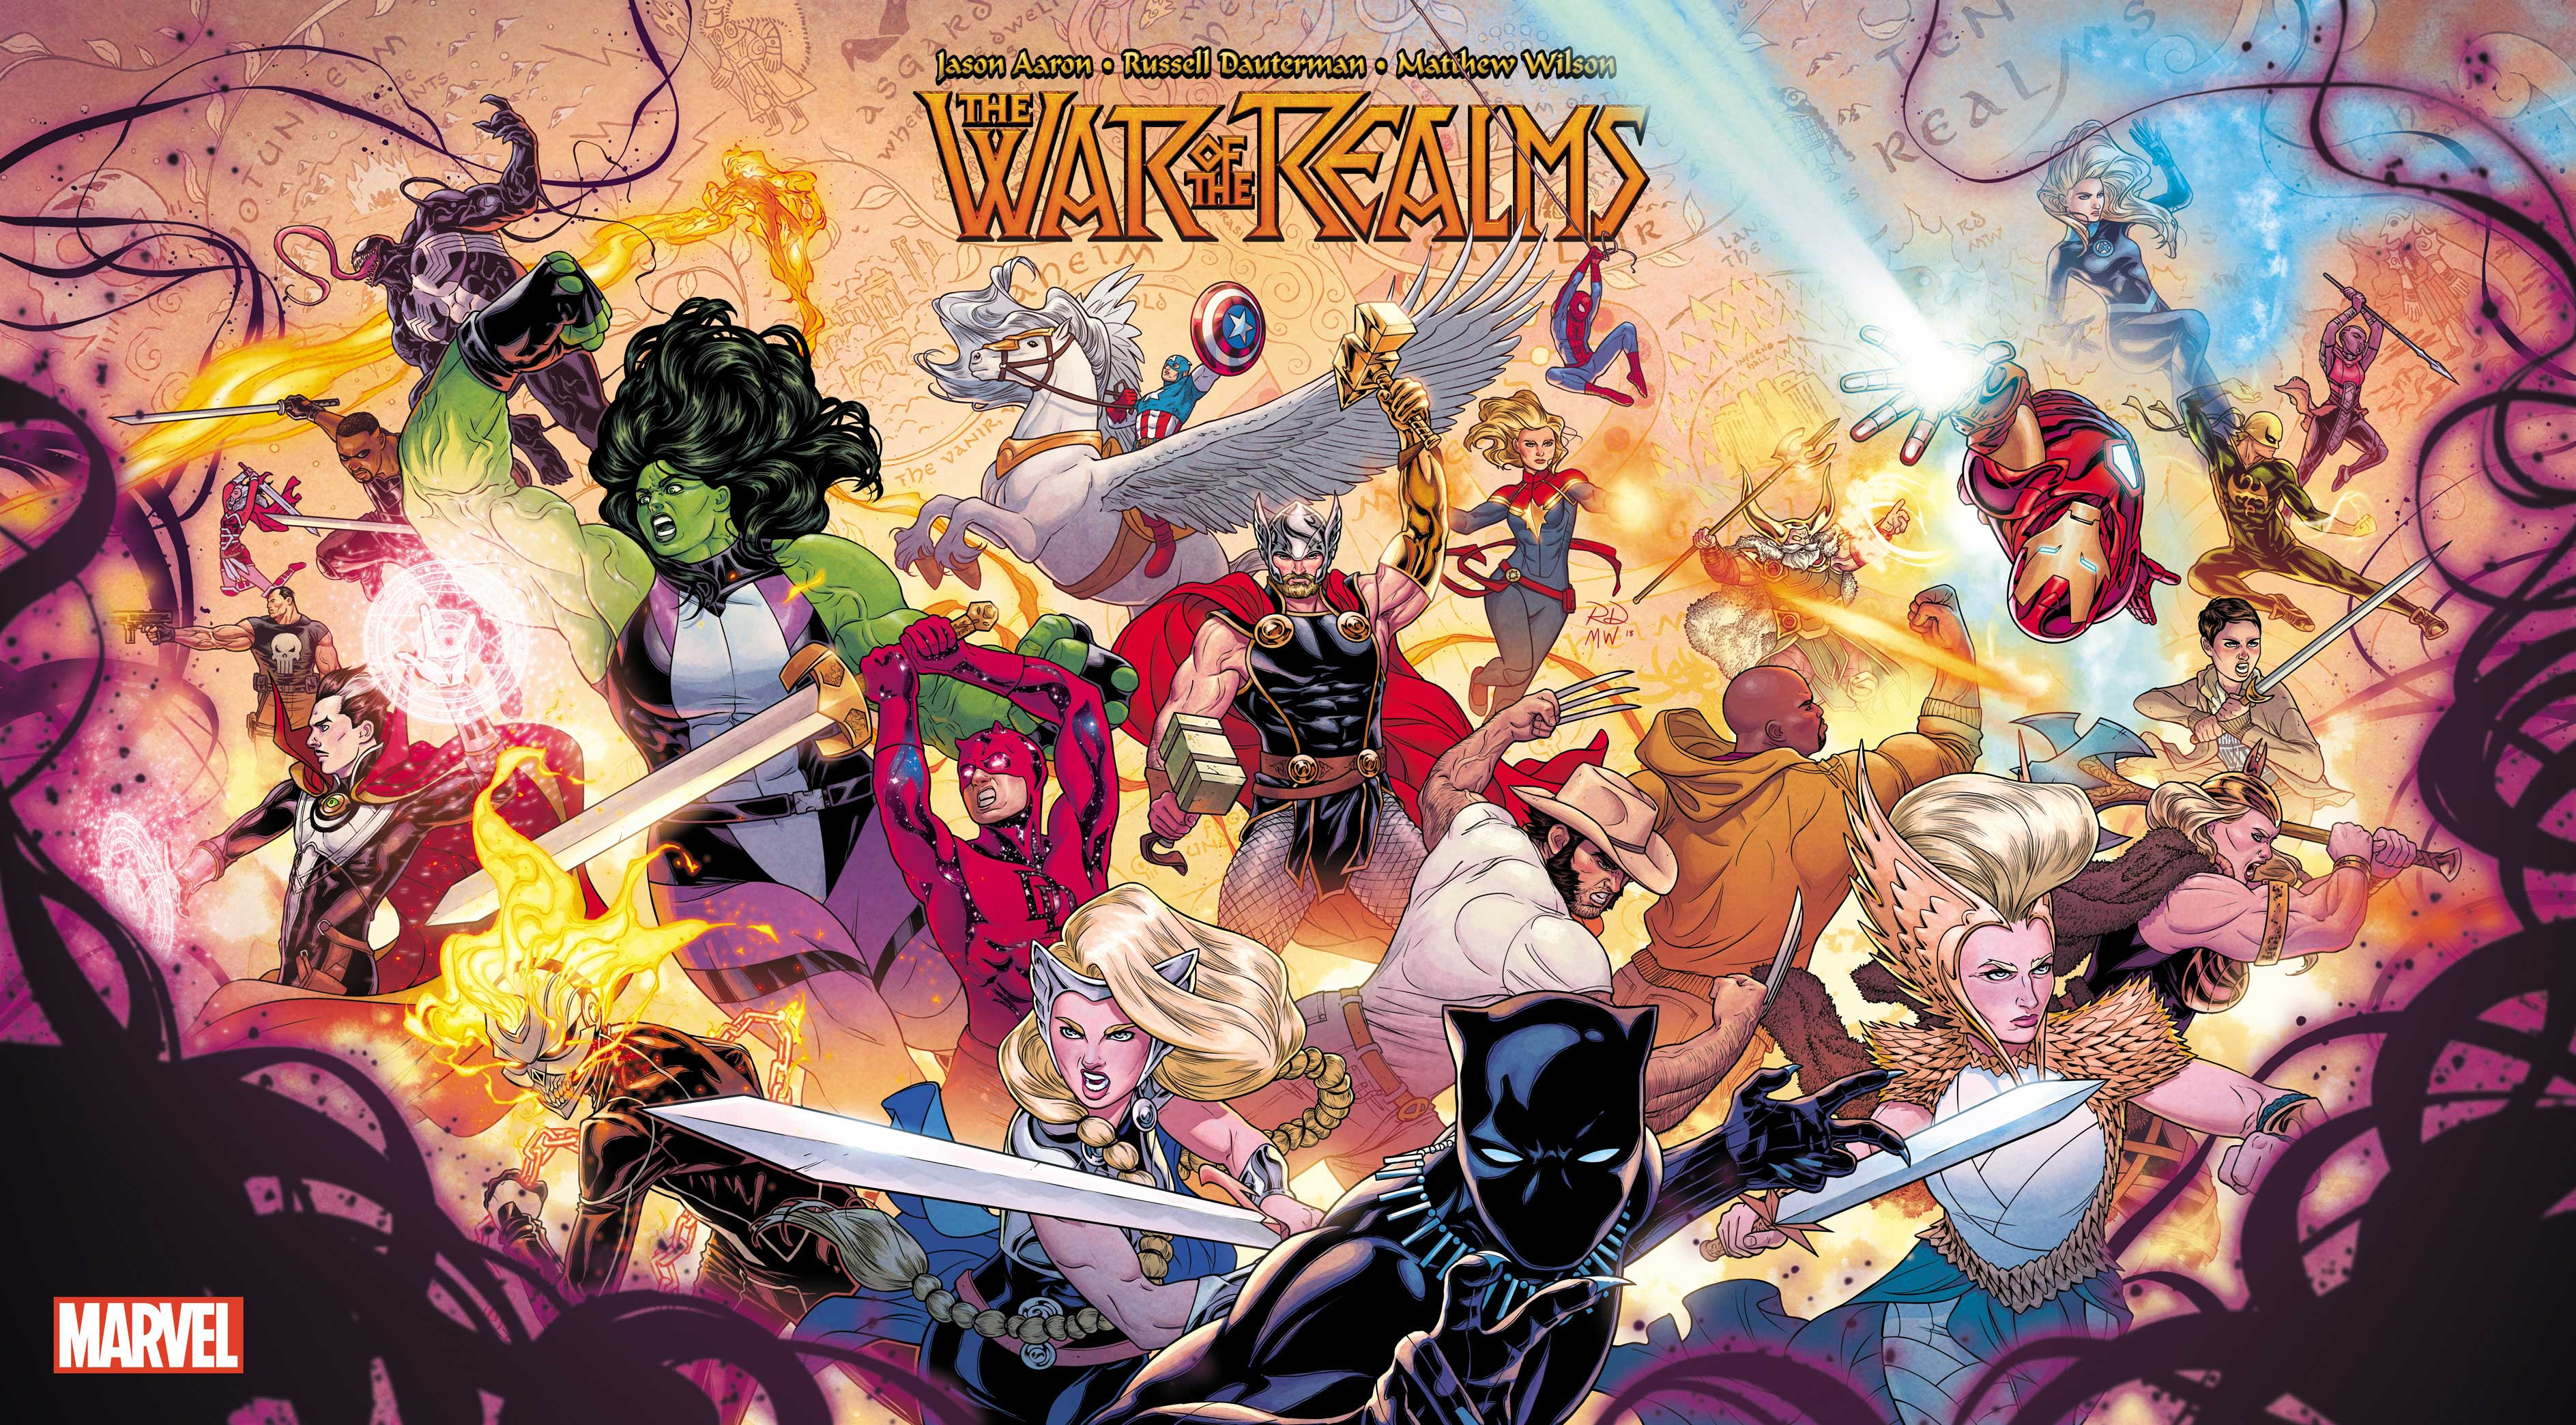 Marvel hypes the War of the Realms is coming!